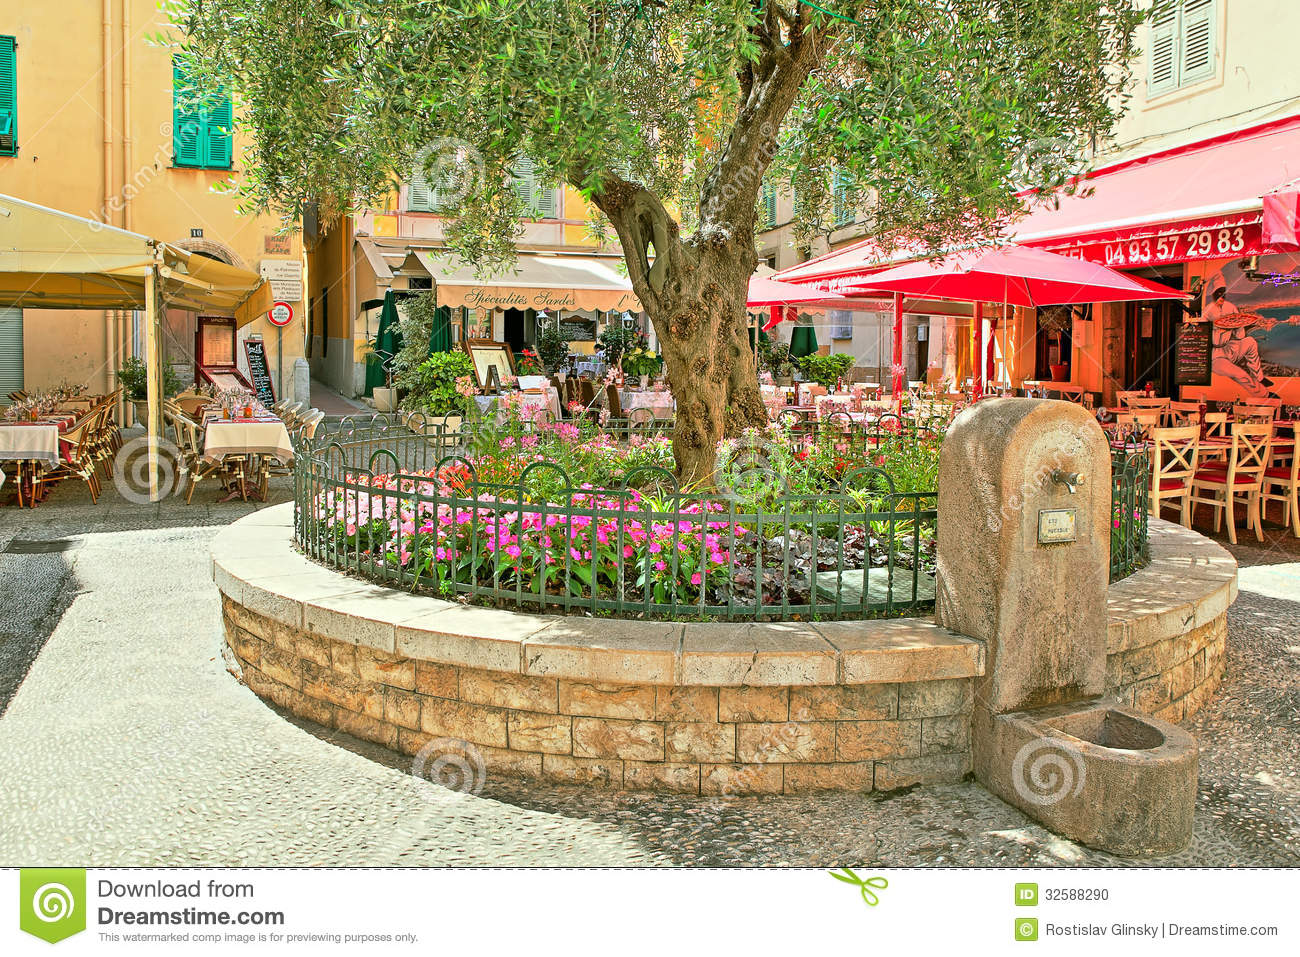 Restaurants And Bars In Menton France Editorial Image  : restaurants bars menton france june small square tree flowers full coffee shops town cote d azur aka french 32588290 from dreamstime.com size 1300 x 957 jpeg 385kB